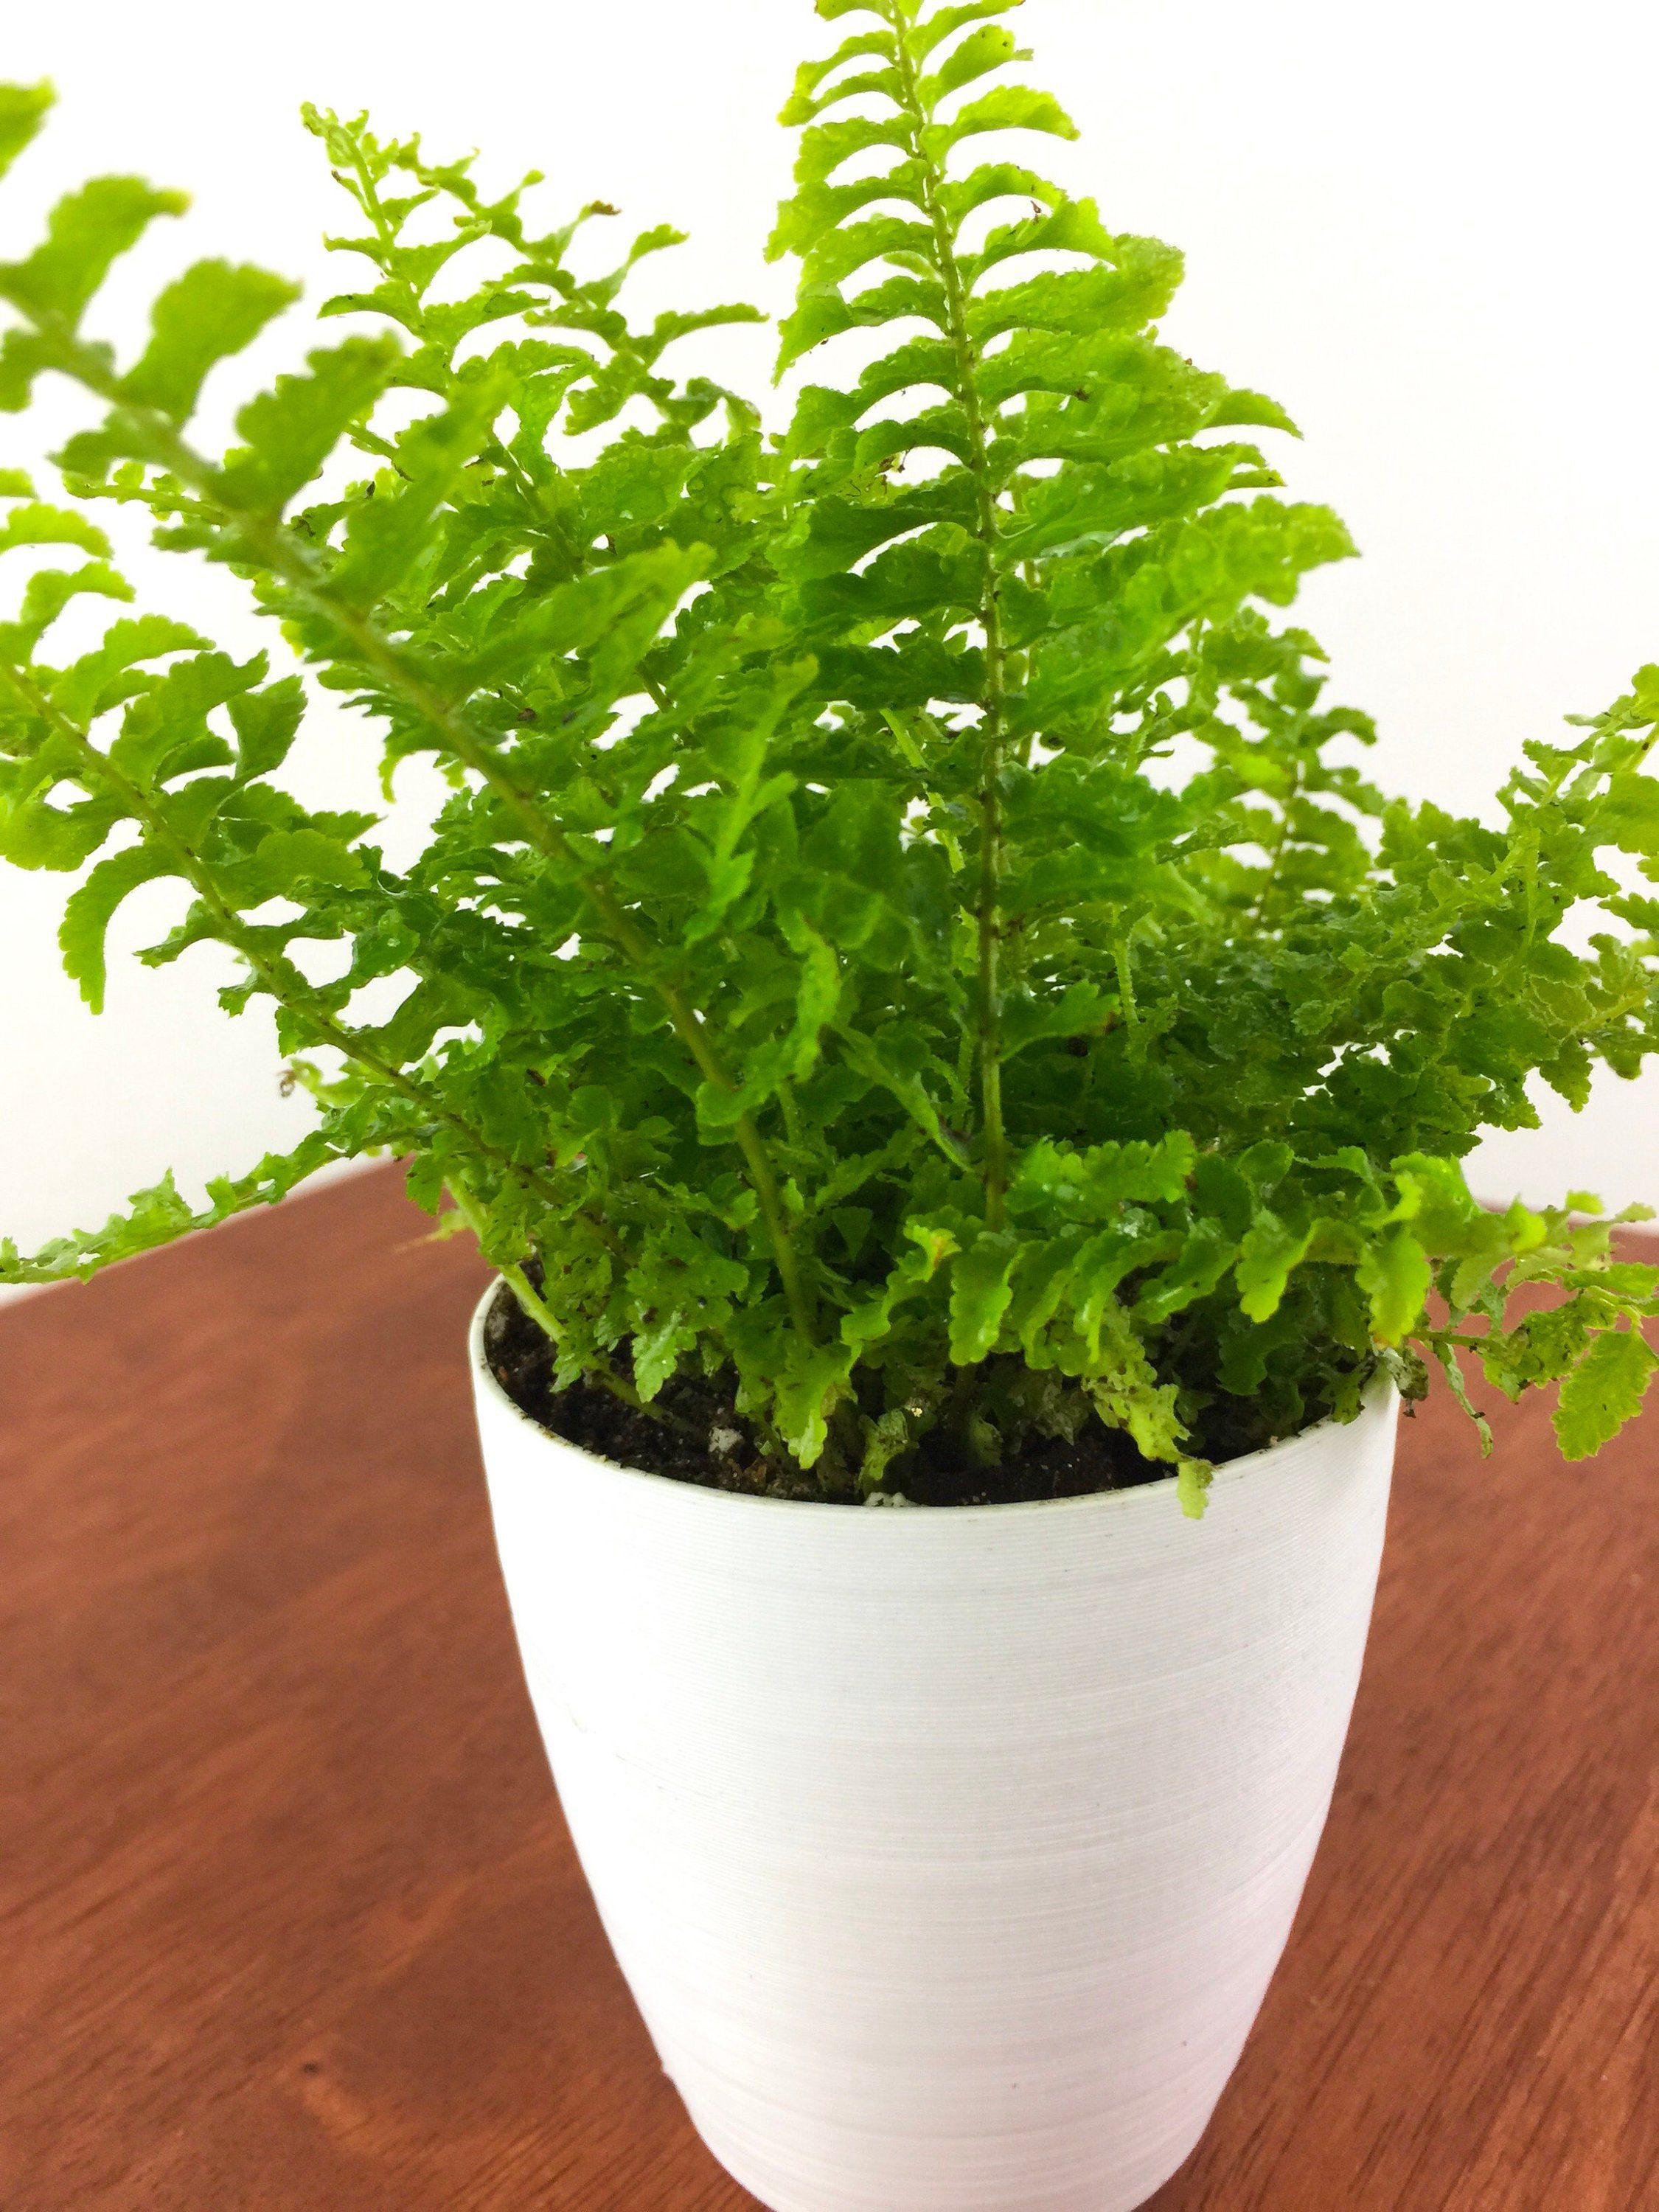 Baby Fern Air Purifying Plant Pet Safe Live Houseplant